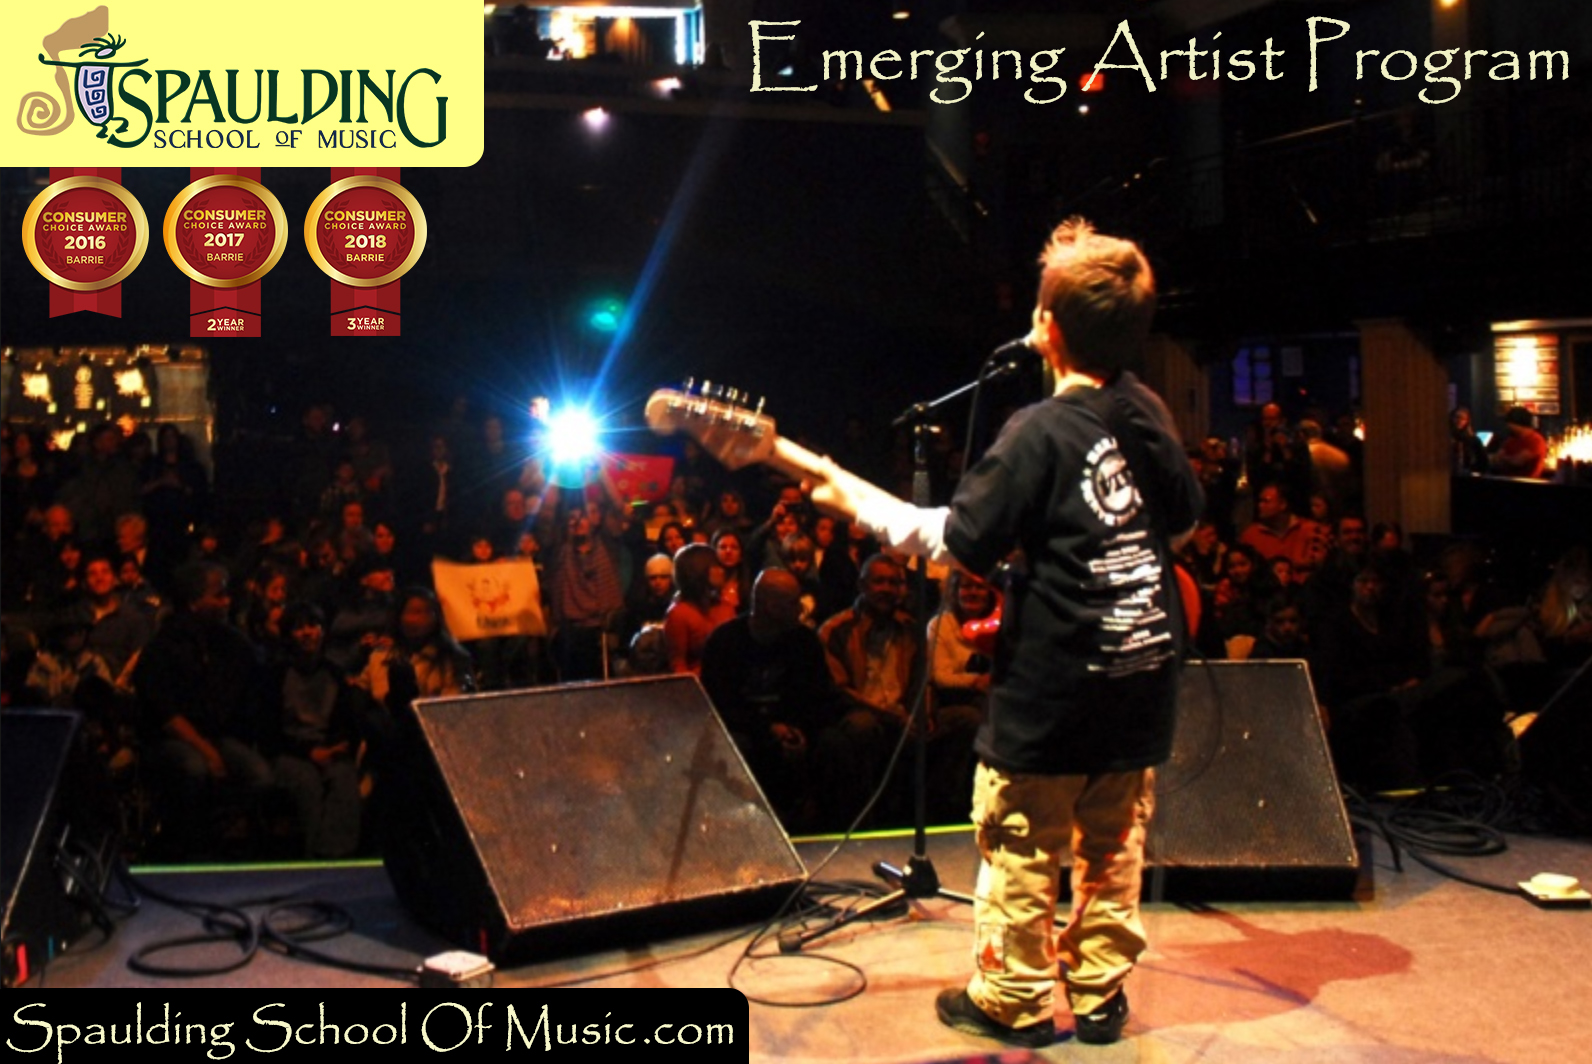 Emerging Artist Program Barrie